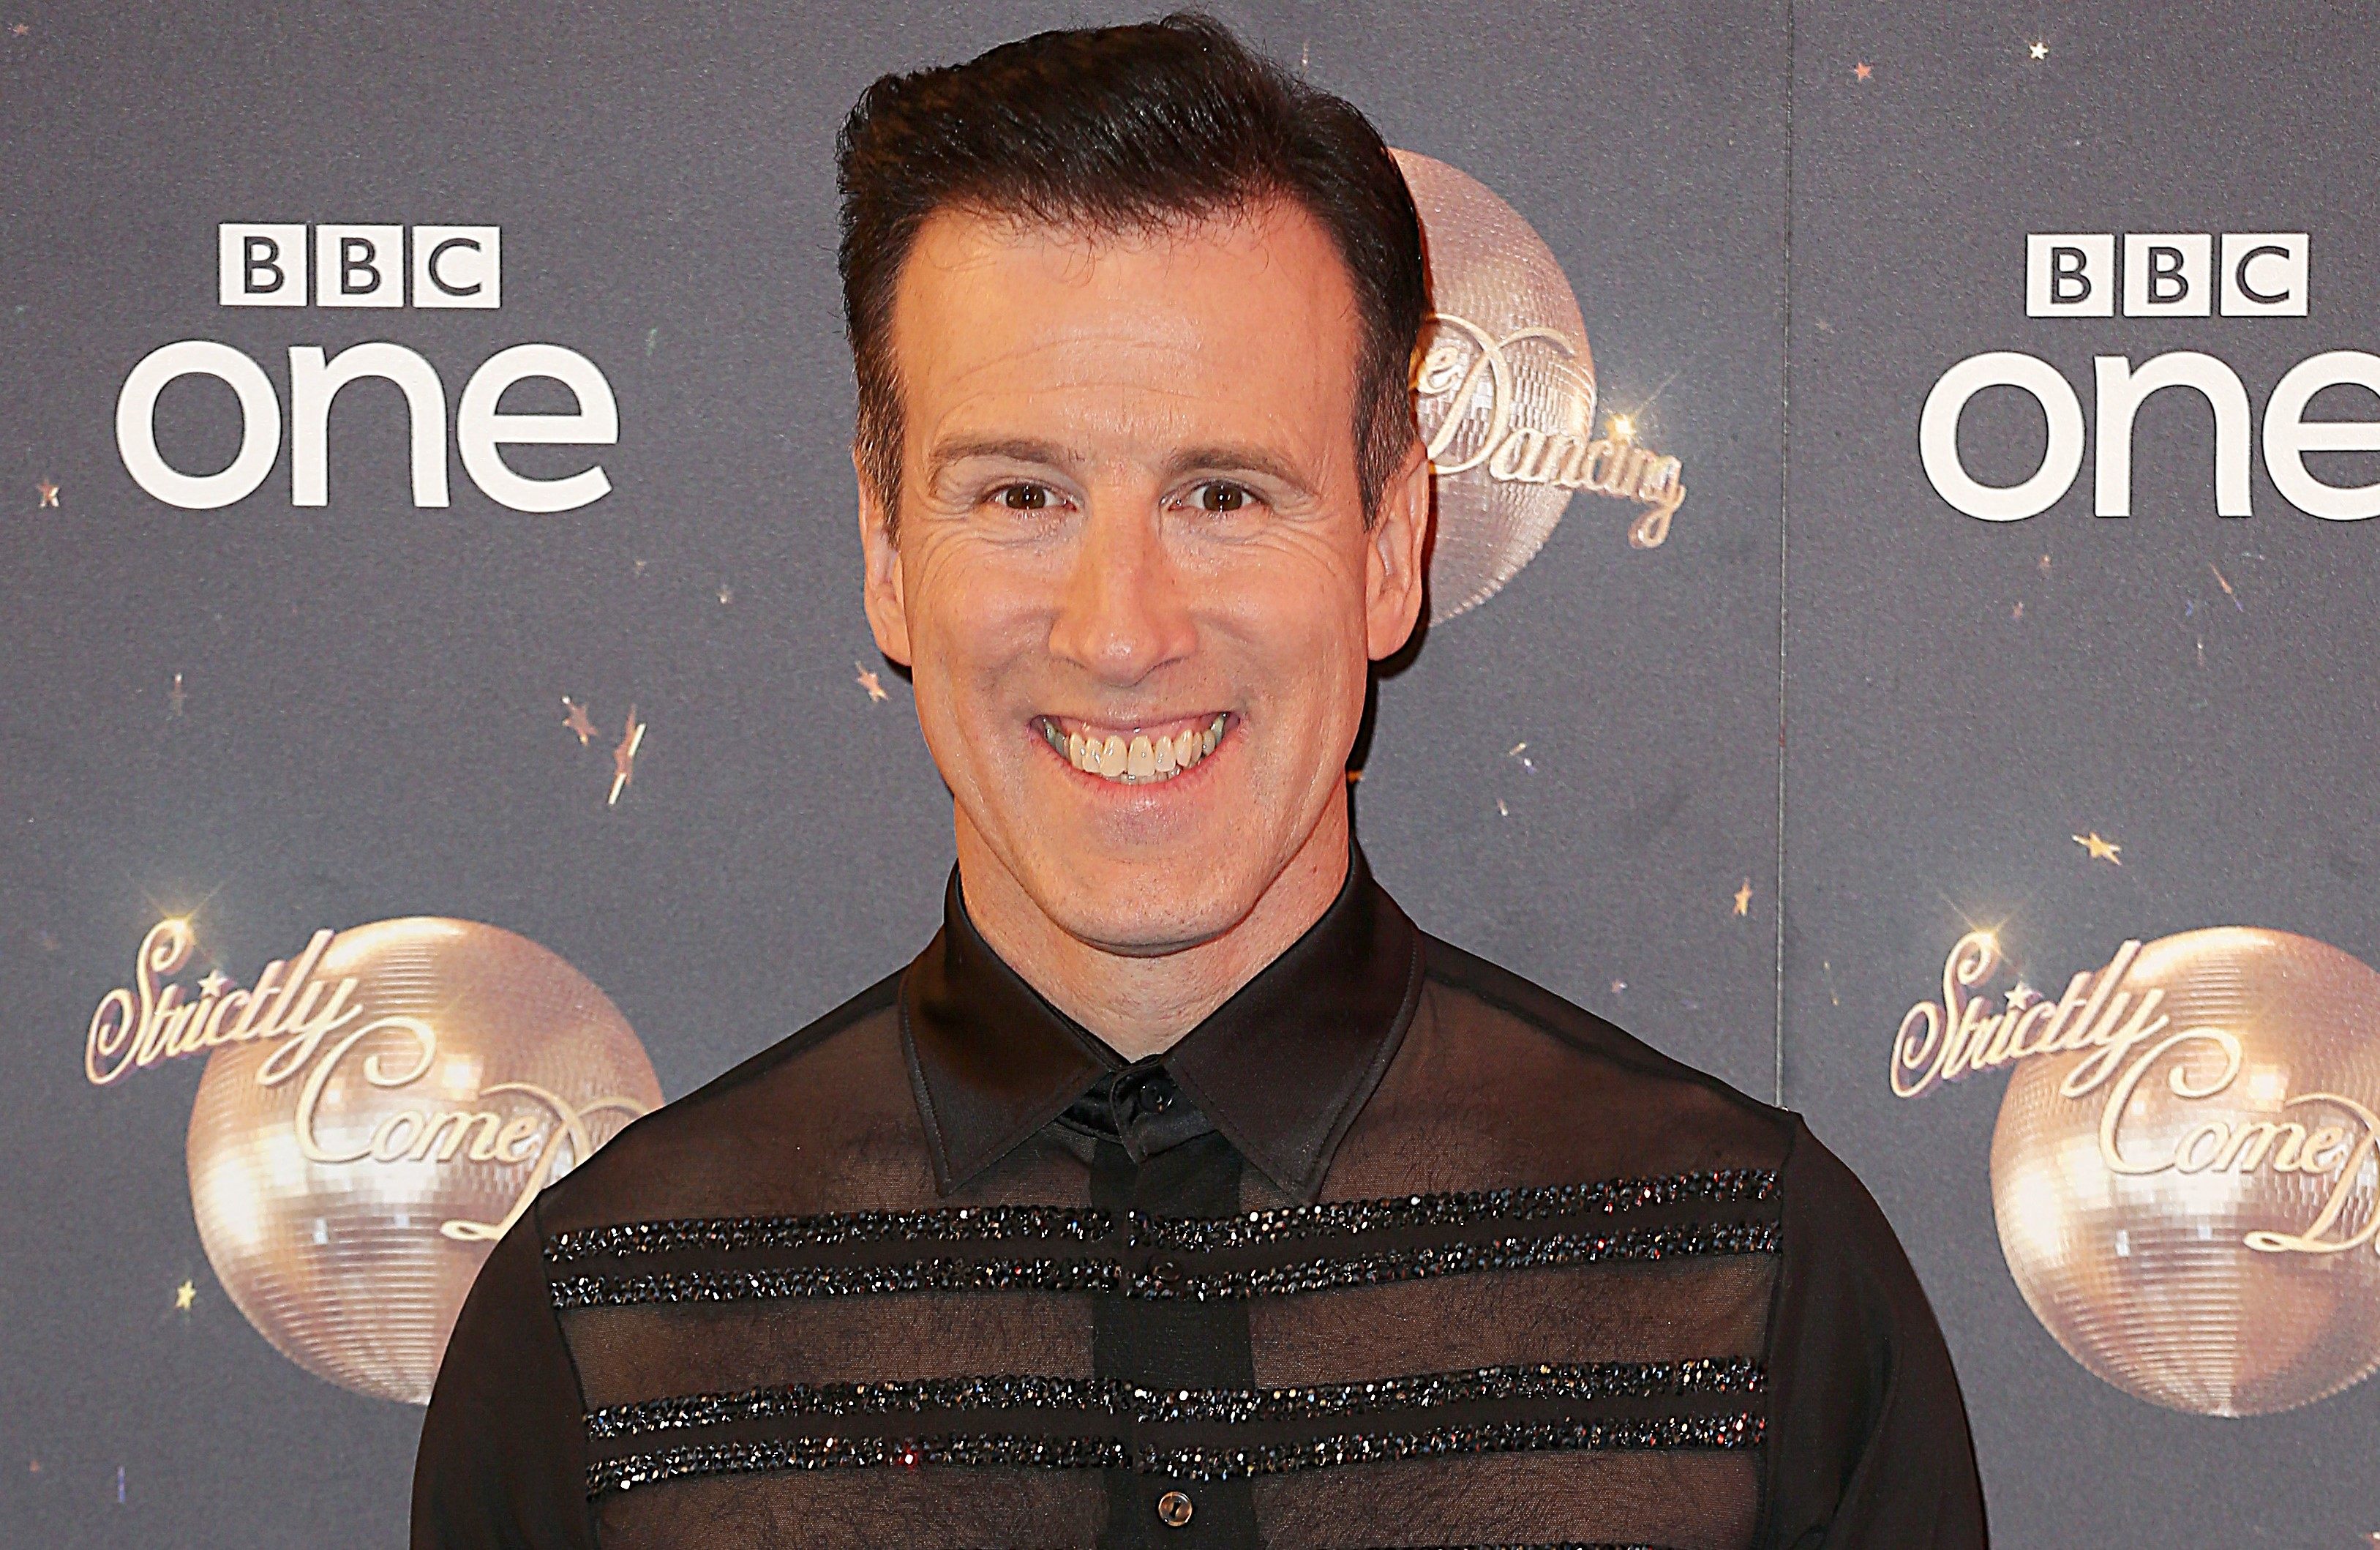 Anton Du Beke admits he would love to replace Darcey Bussell on Strictly